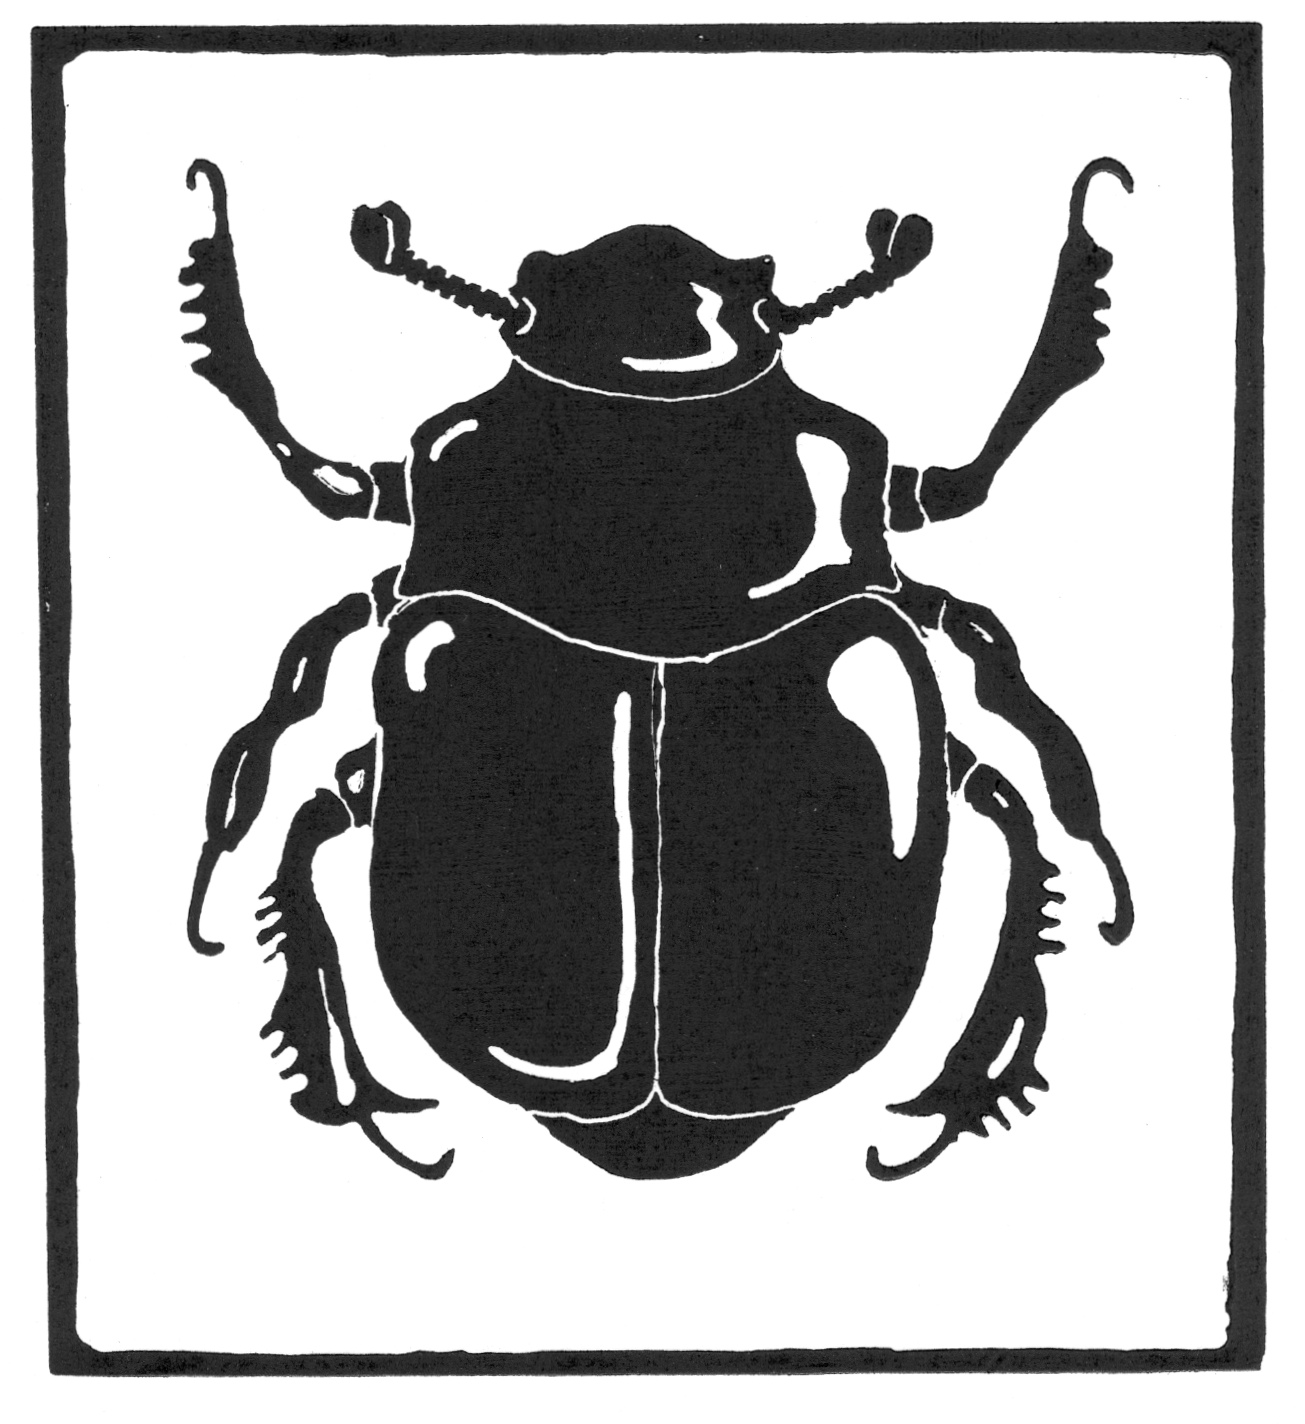 Scarab • © Fred Montague  $48 • image 6 x 5.5 • mat 12 x 12  Edition size: 88 • status: available